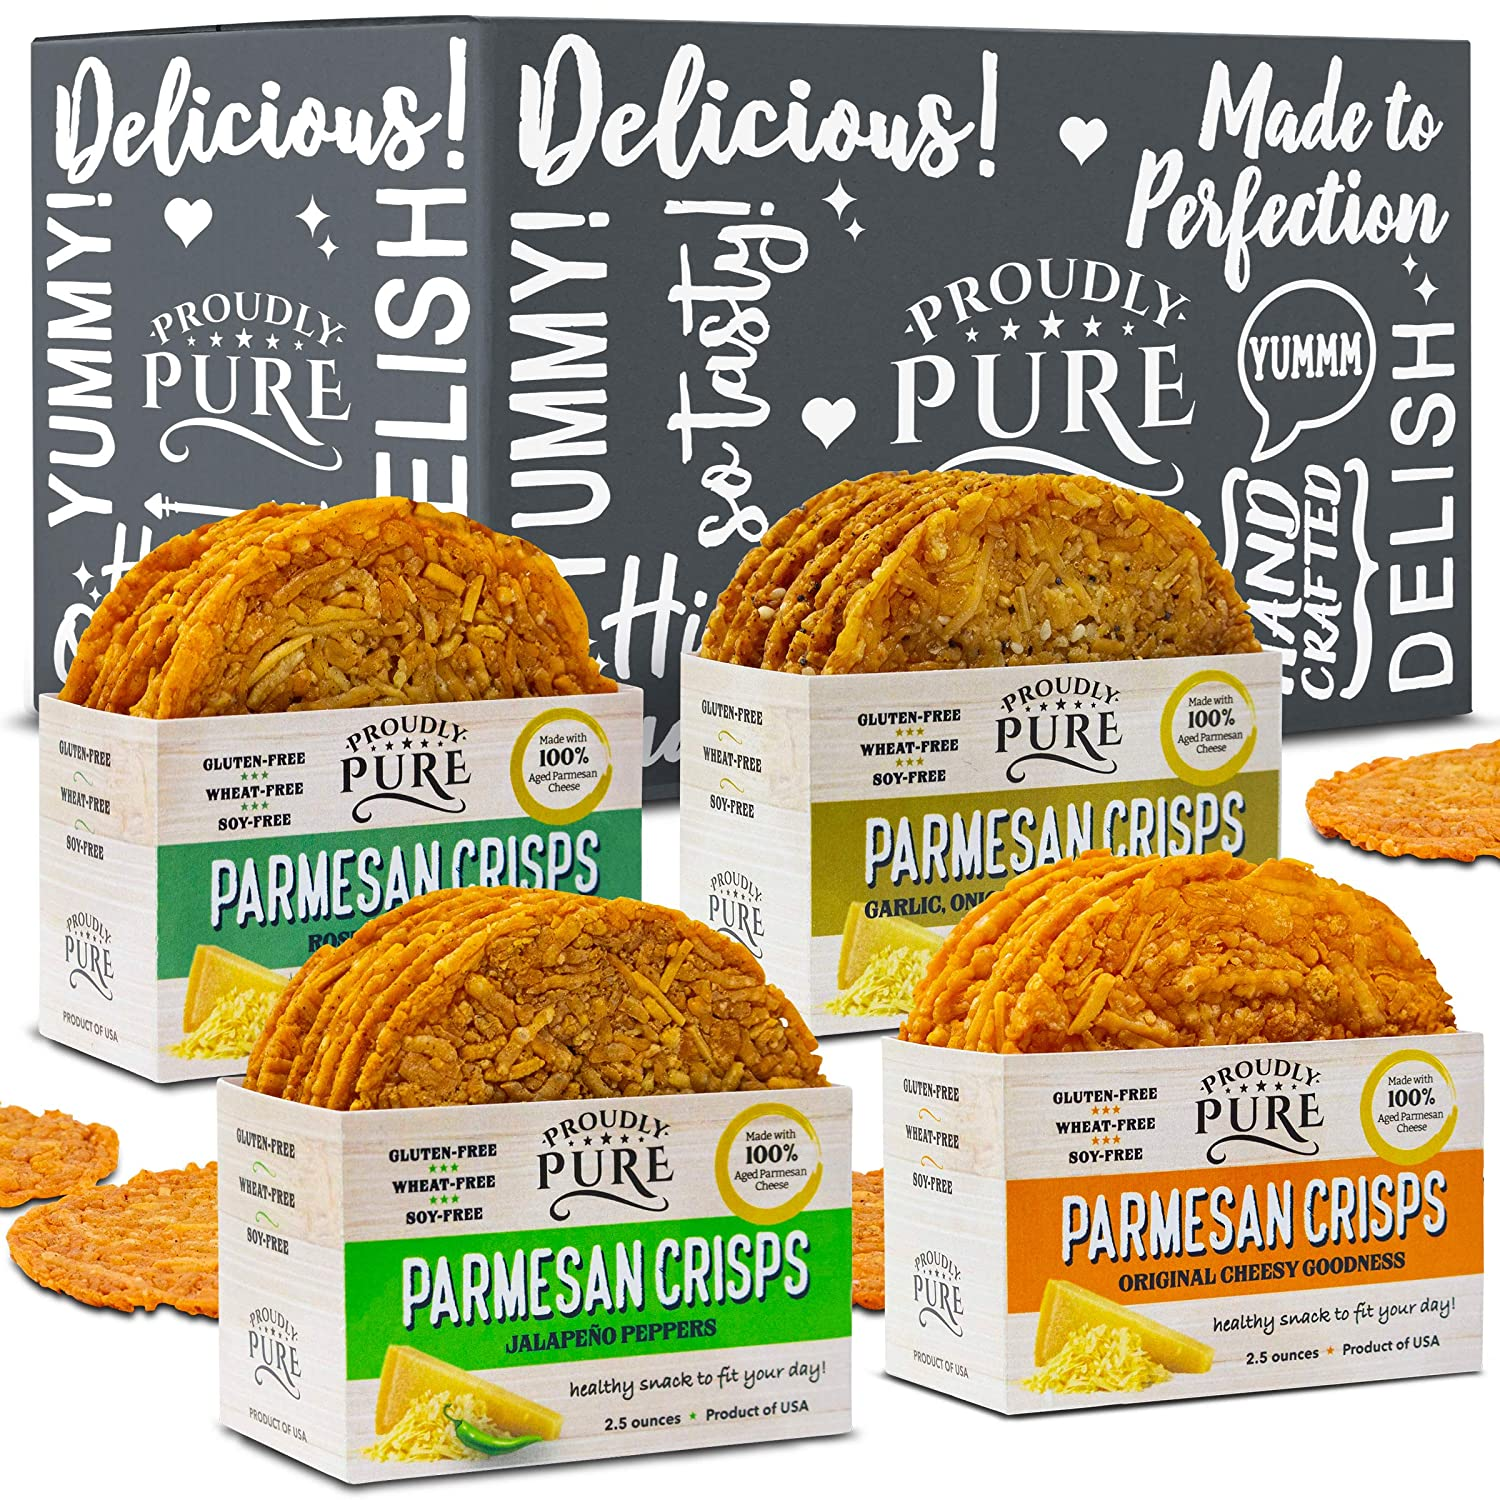 Proudly Pure Parmesan Cheese Crisps - Keto Snacks Zero Carb Crunchy Delicious Healthy 100% Natural Aged Cheesy Parm Chips Wheat, Soy & Gluten Free Keto Crackers Low Carb Snacks | Variety 4 PACK